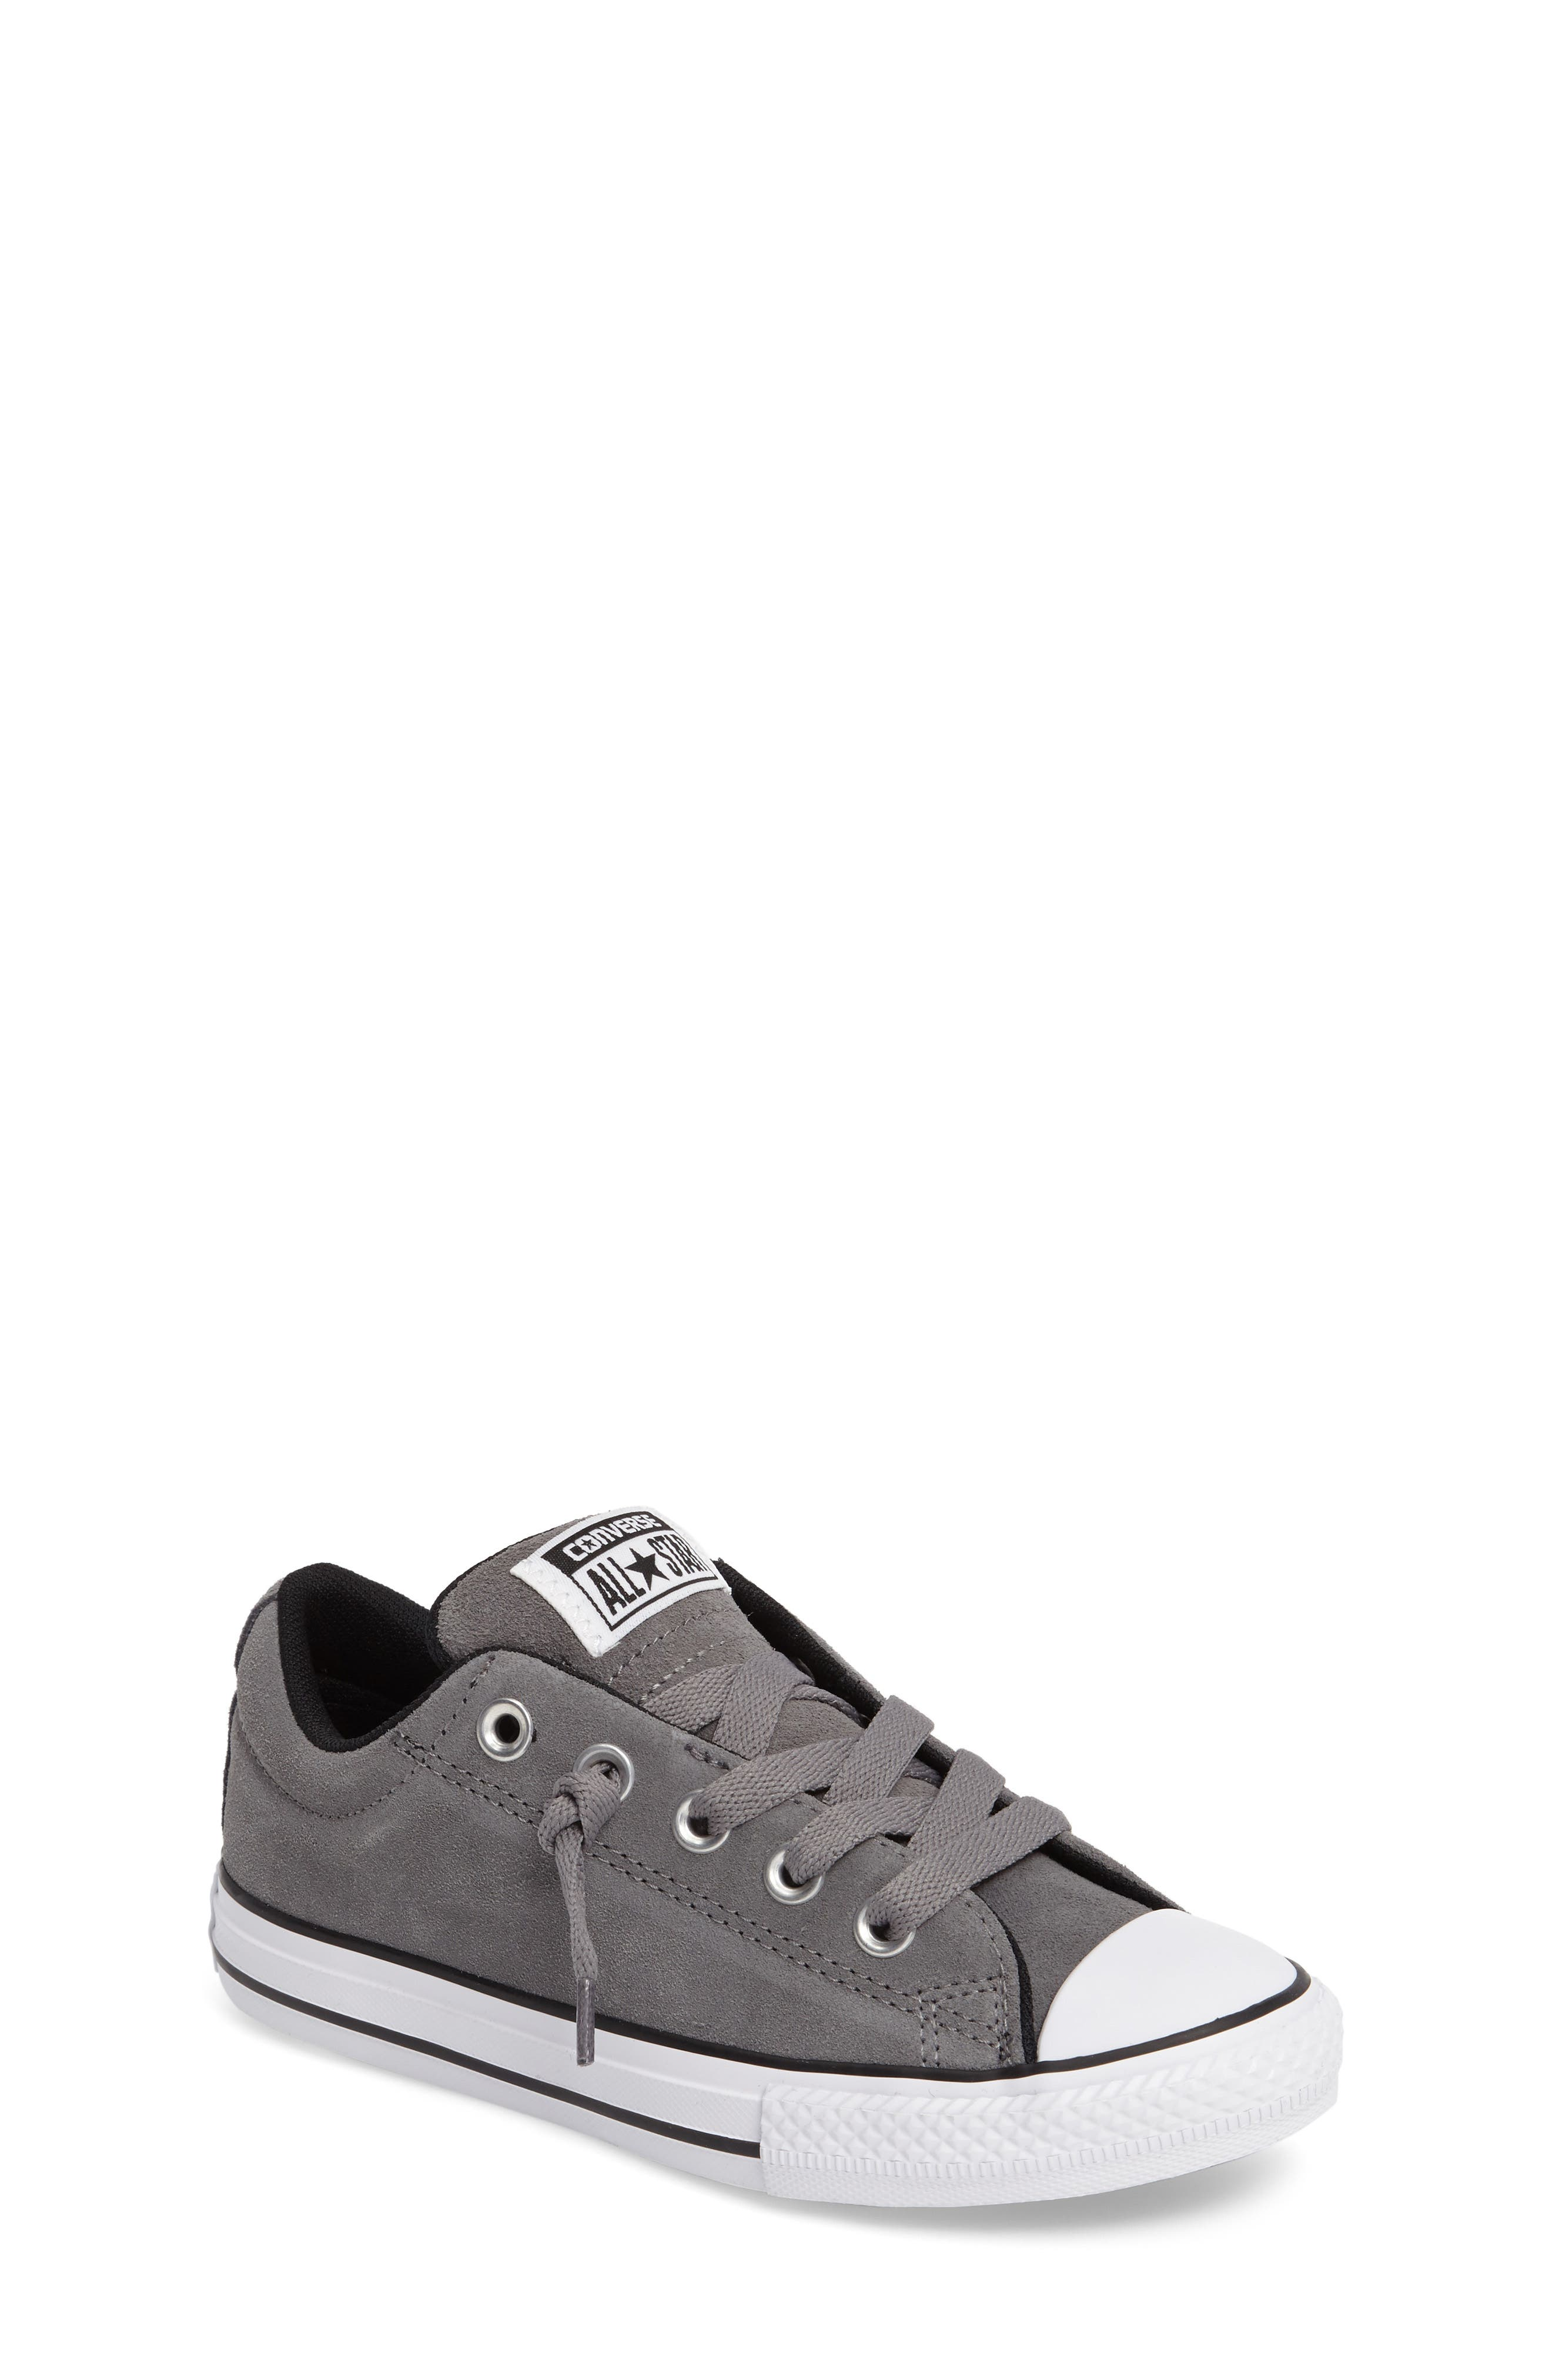 Chuck Taylor<sup>®</sup> All Star<sup>®</sup> Street Sneaker,                         Main,                         color, 038